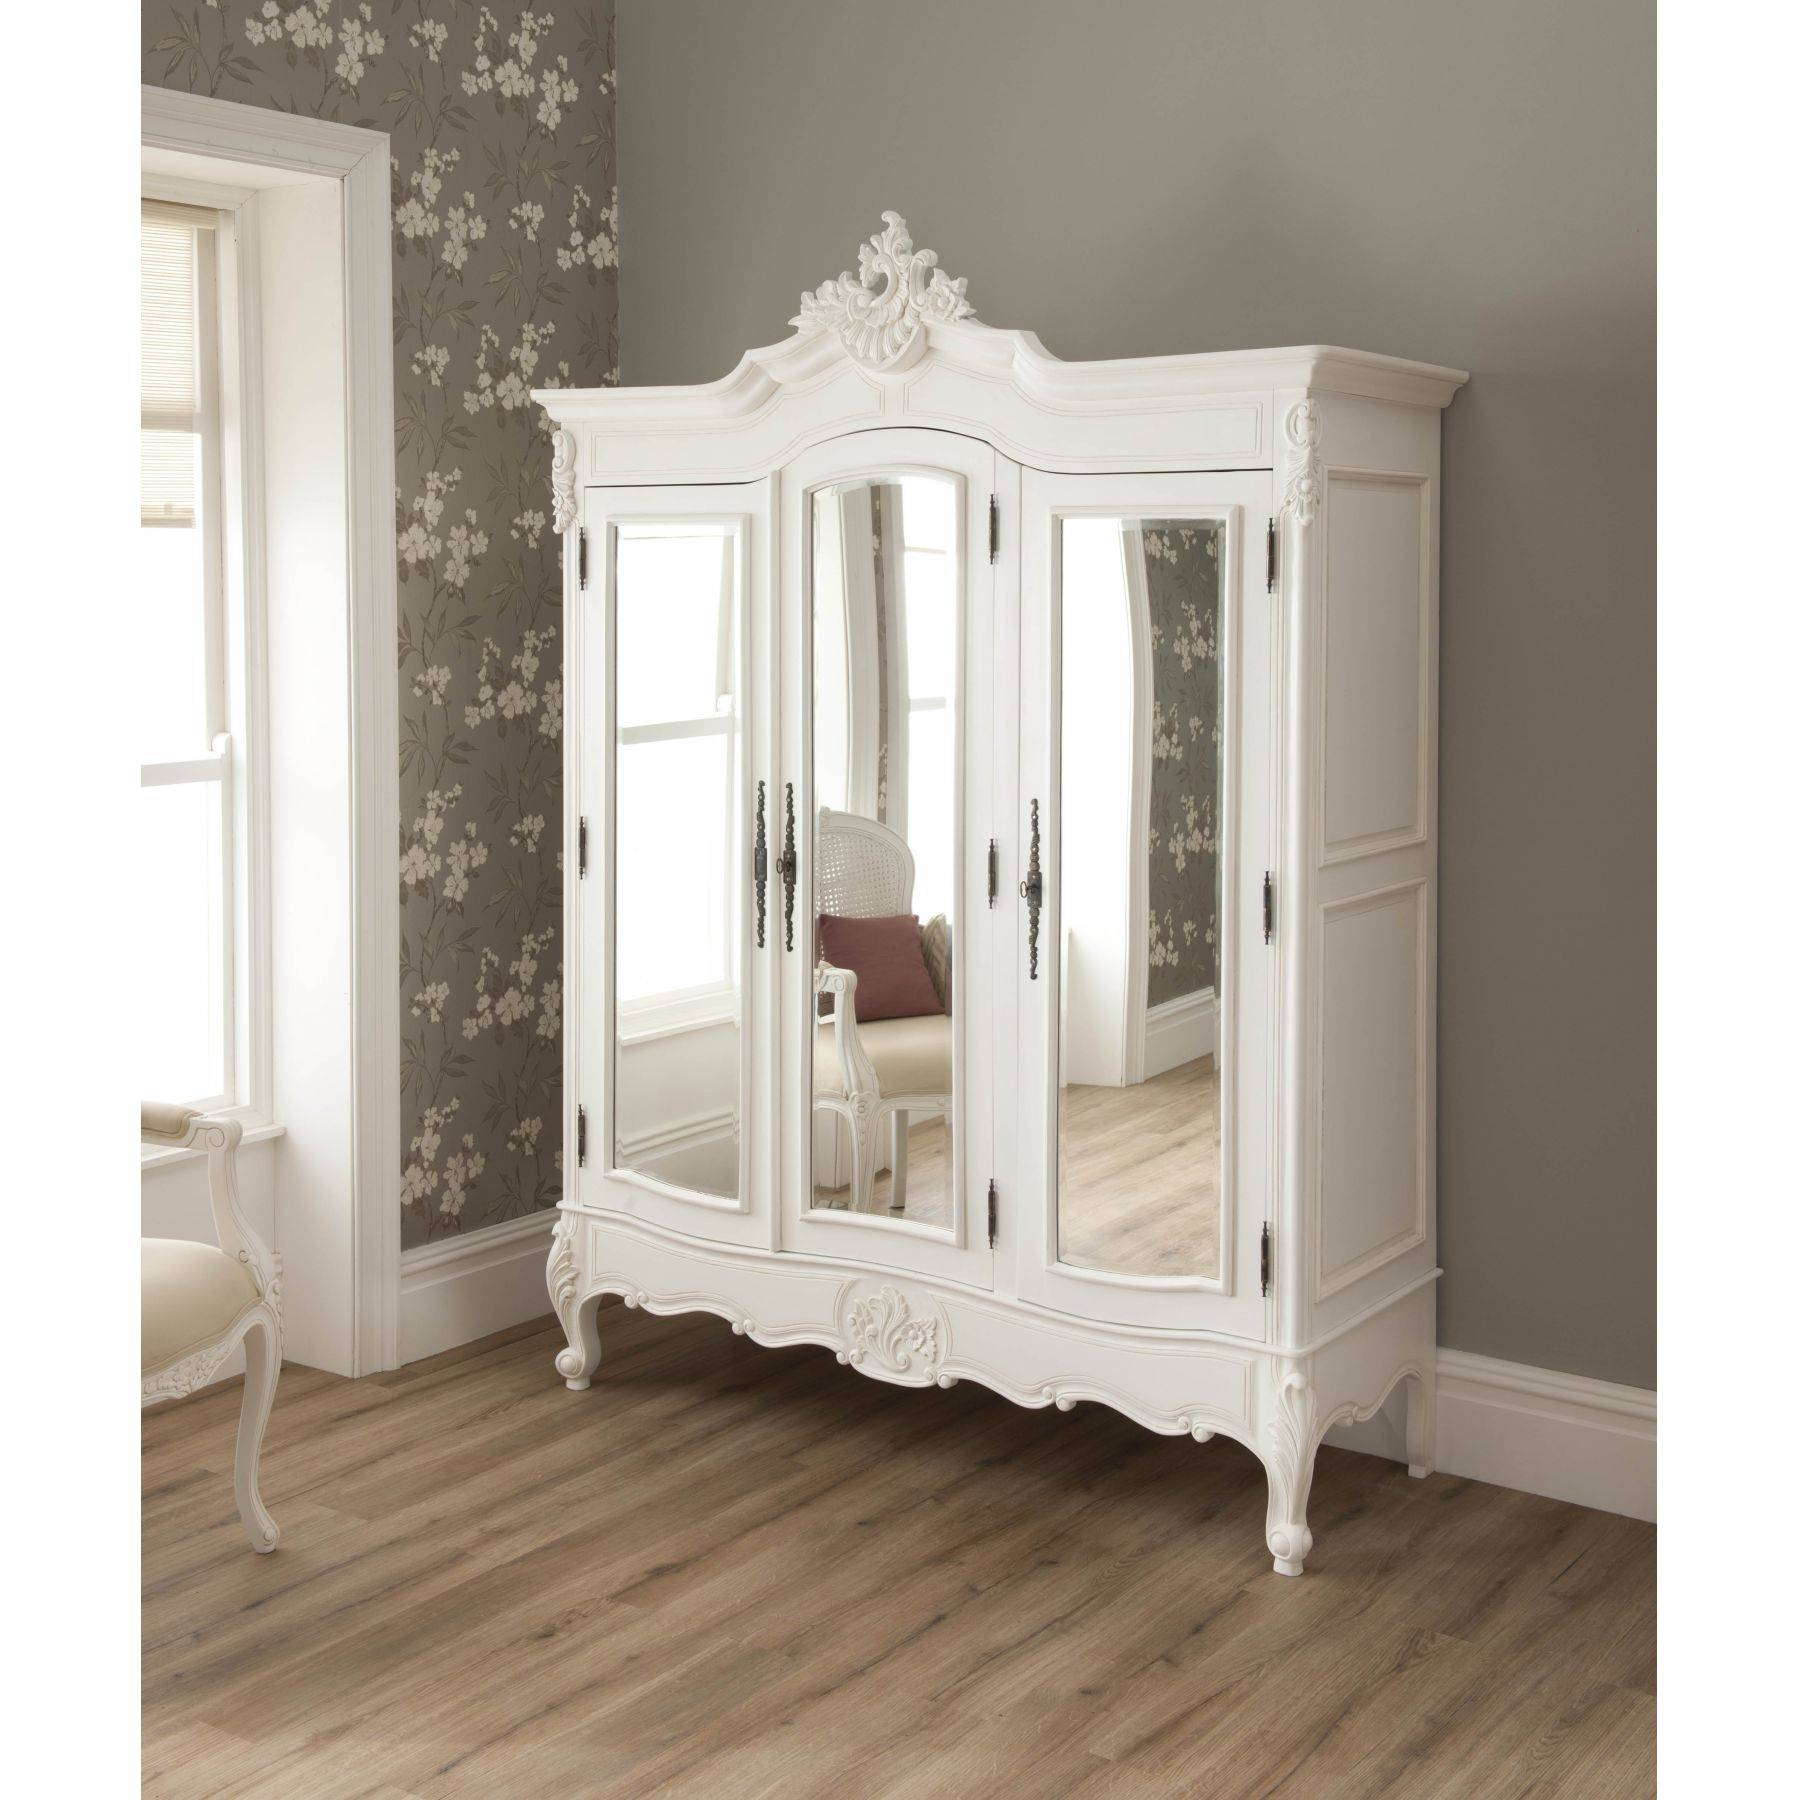 La Rochelle Shabby Chic Antique Style Wardrobe | Shabby Chic Furniture for White Wardrobes French Style (Image 9 of 15)